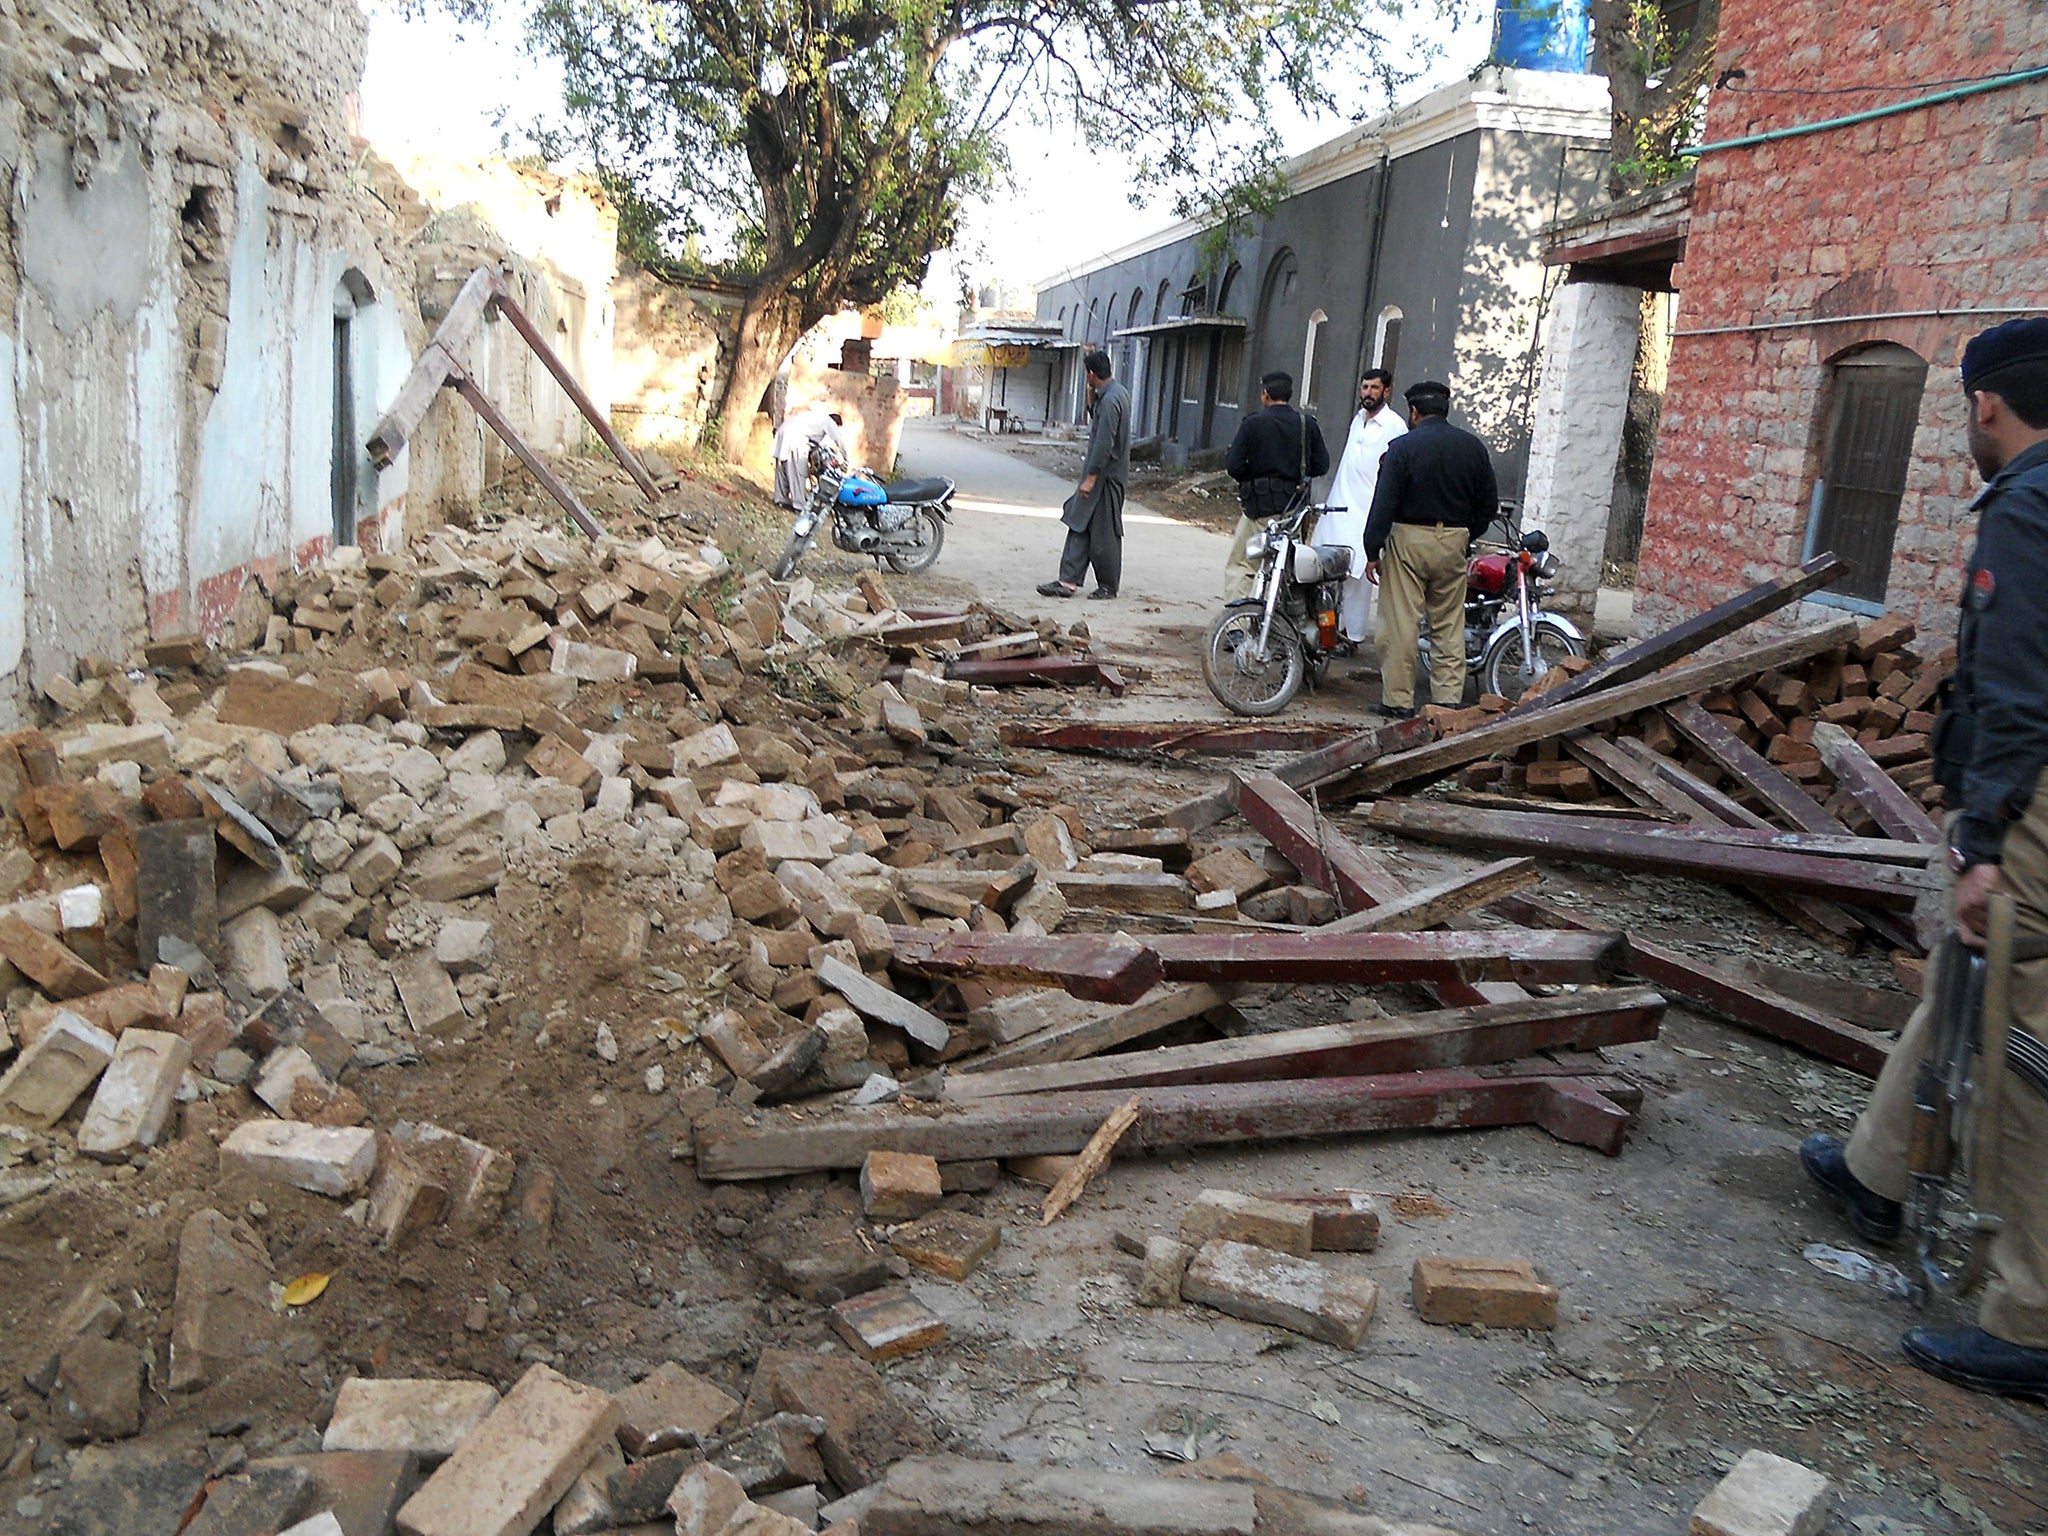 earthquake essay south asia s most deadly earthquakes as disaster south asia s most deadly earthquakes as disaster strikes again south asia s most deadly earthquakes essay about earthquake